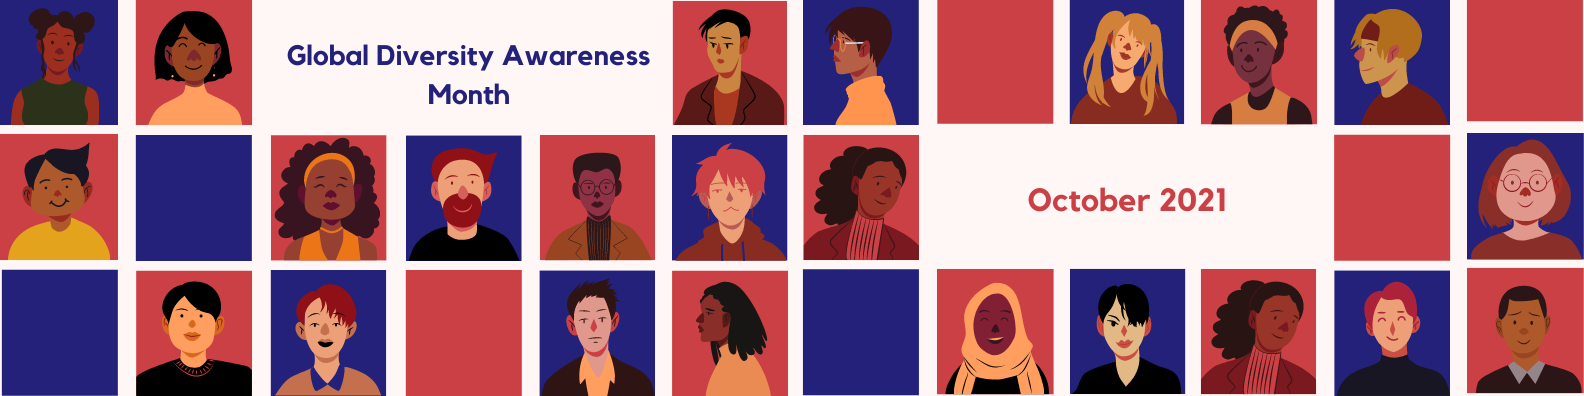 """blue and red squares with cartoon drawings of people of different race and two white sections containing text, """"Global Diversity Awareness Month. October 2021."""""""